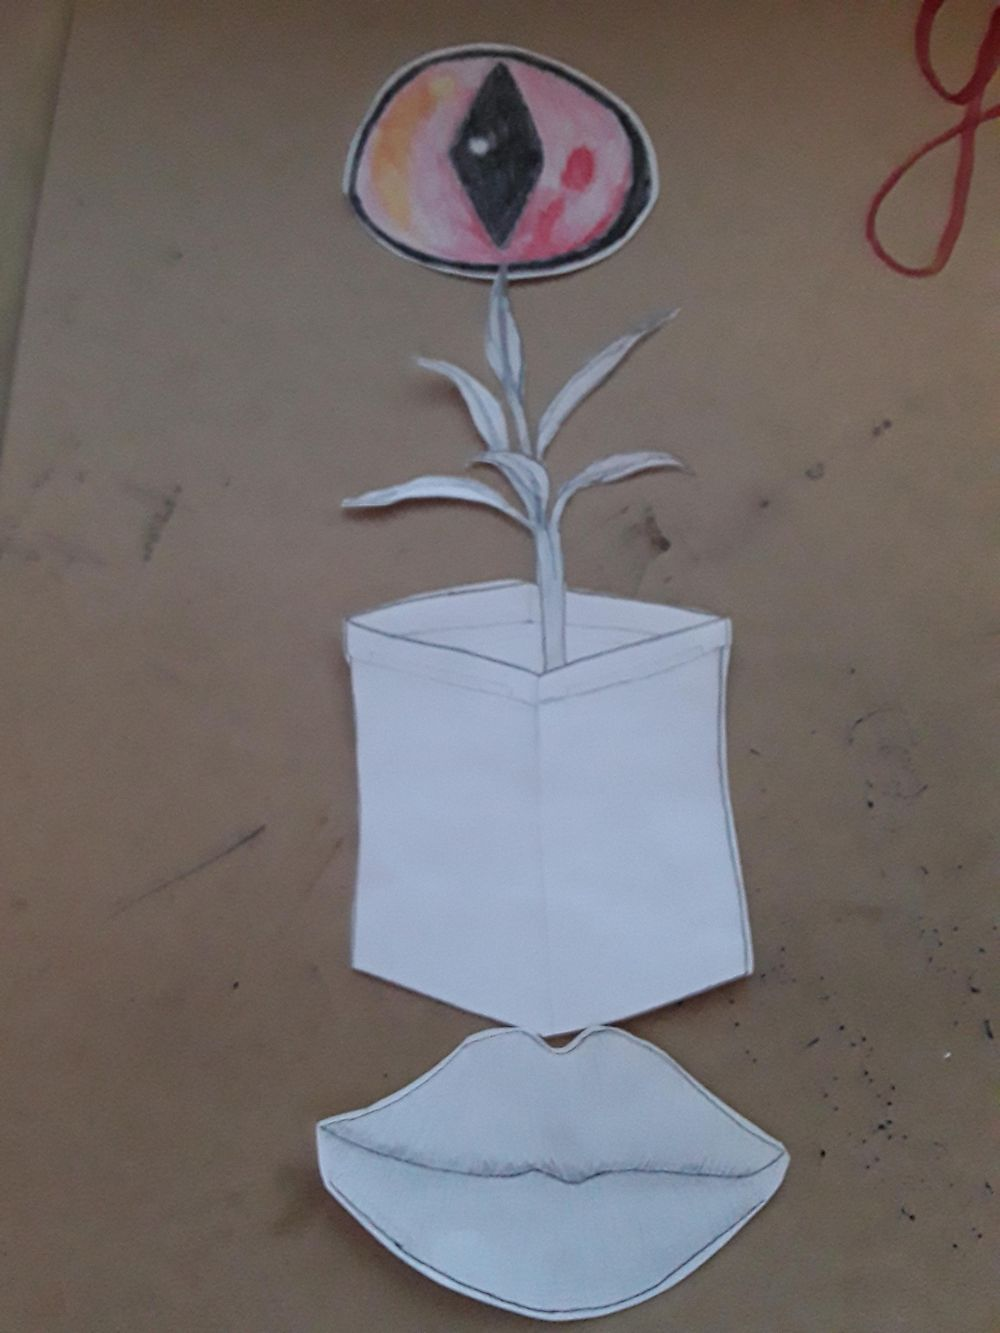 Becoming creative - image 14 - student project